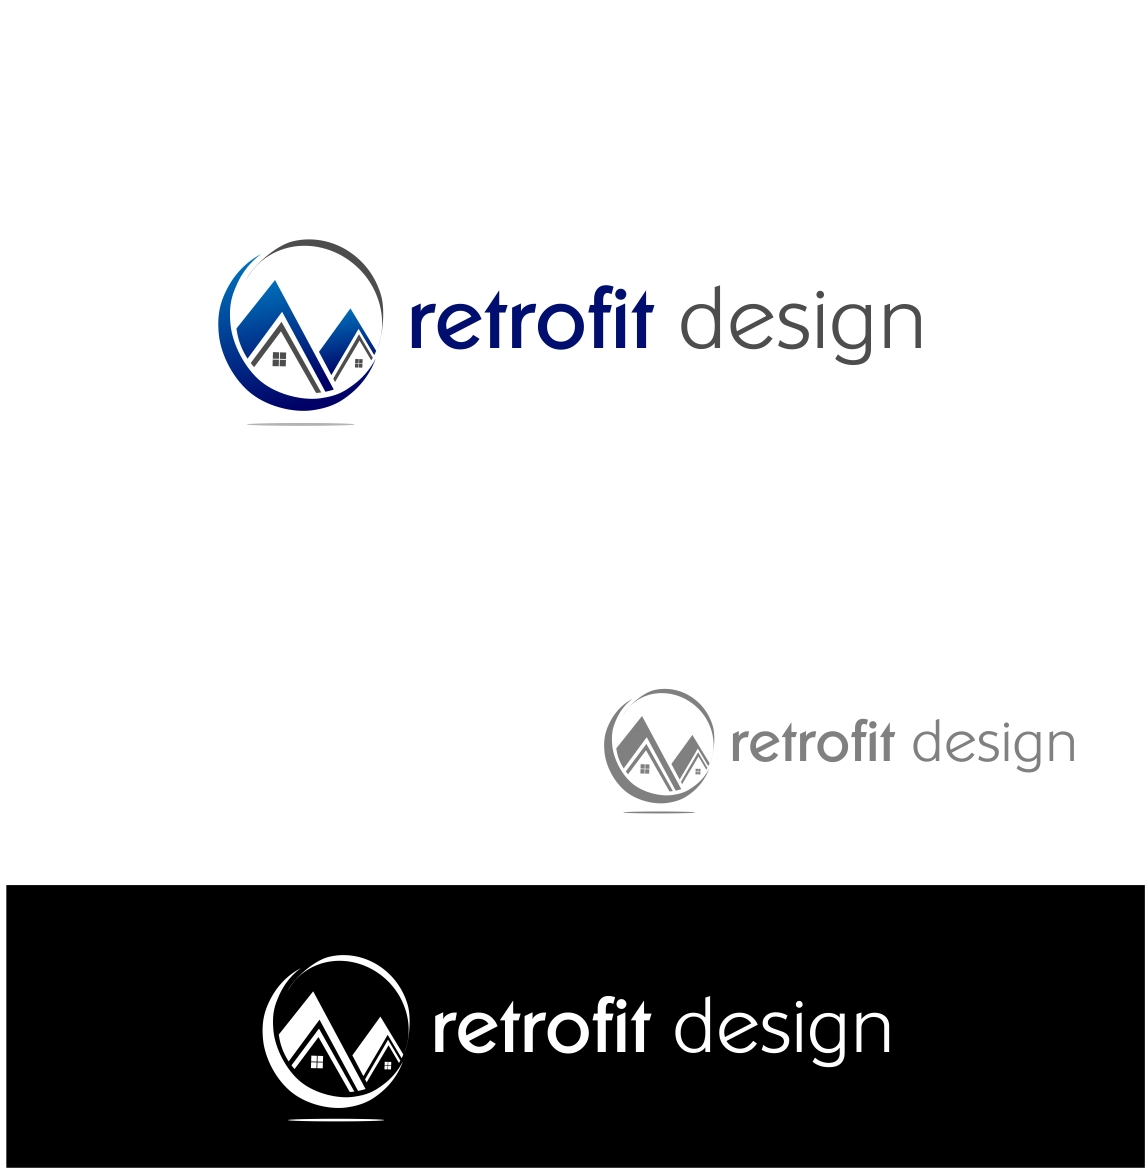 Logo Design by haidu - Entry No. 172 in the Logo Design Contest Inspiring Logo Design for retrofit design.